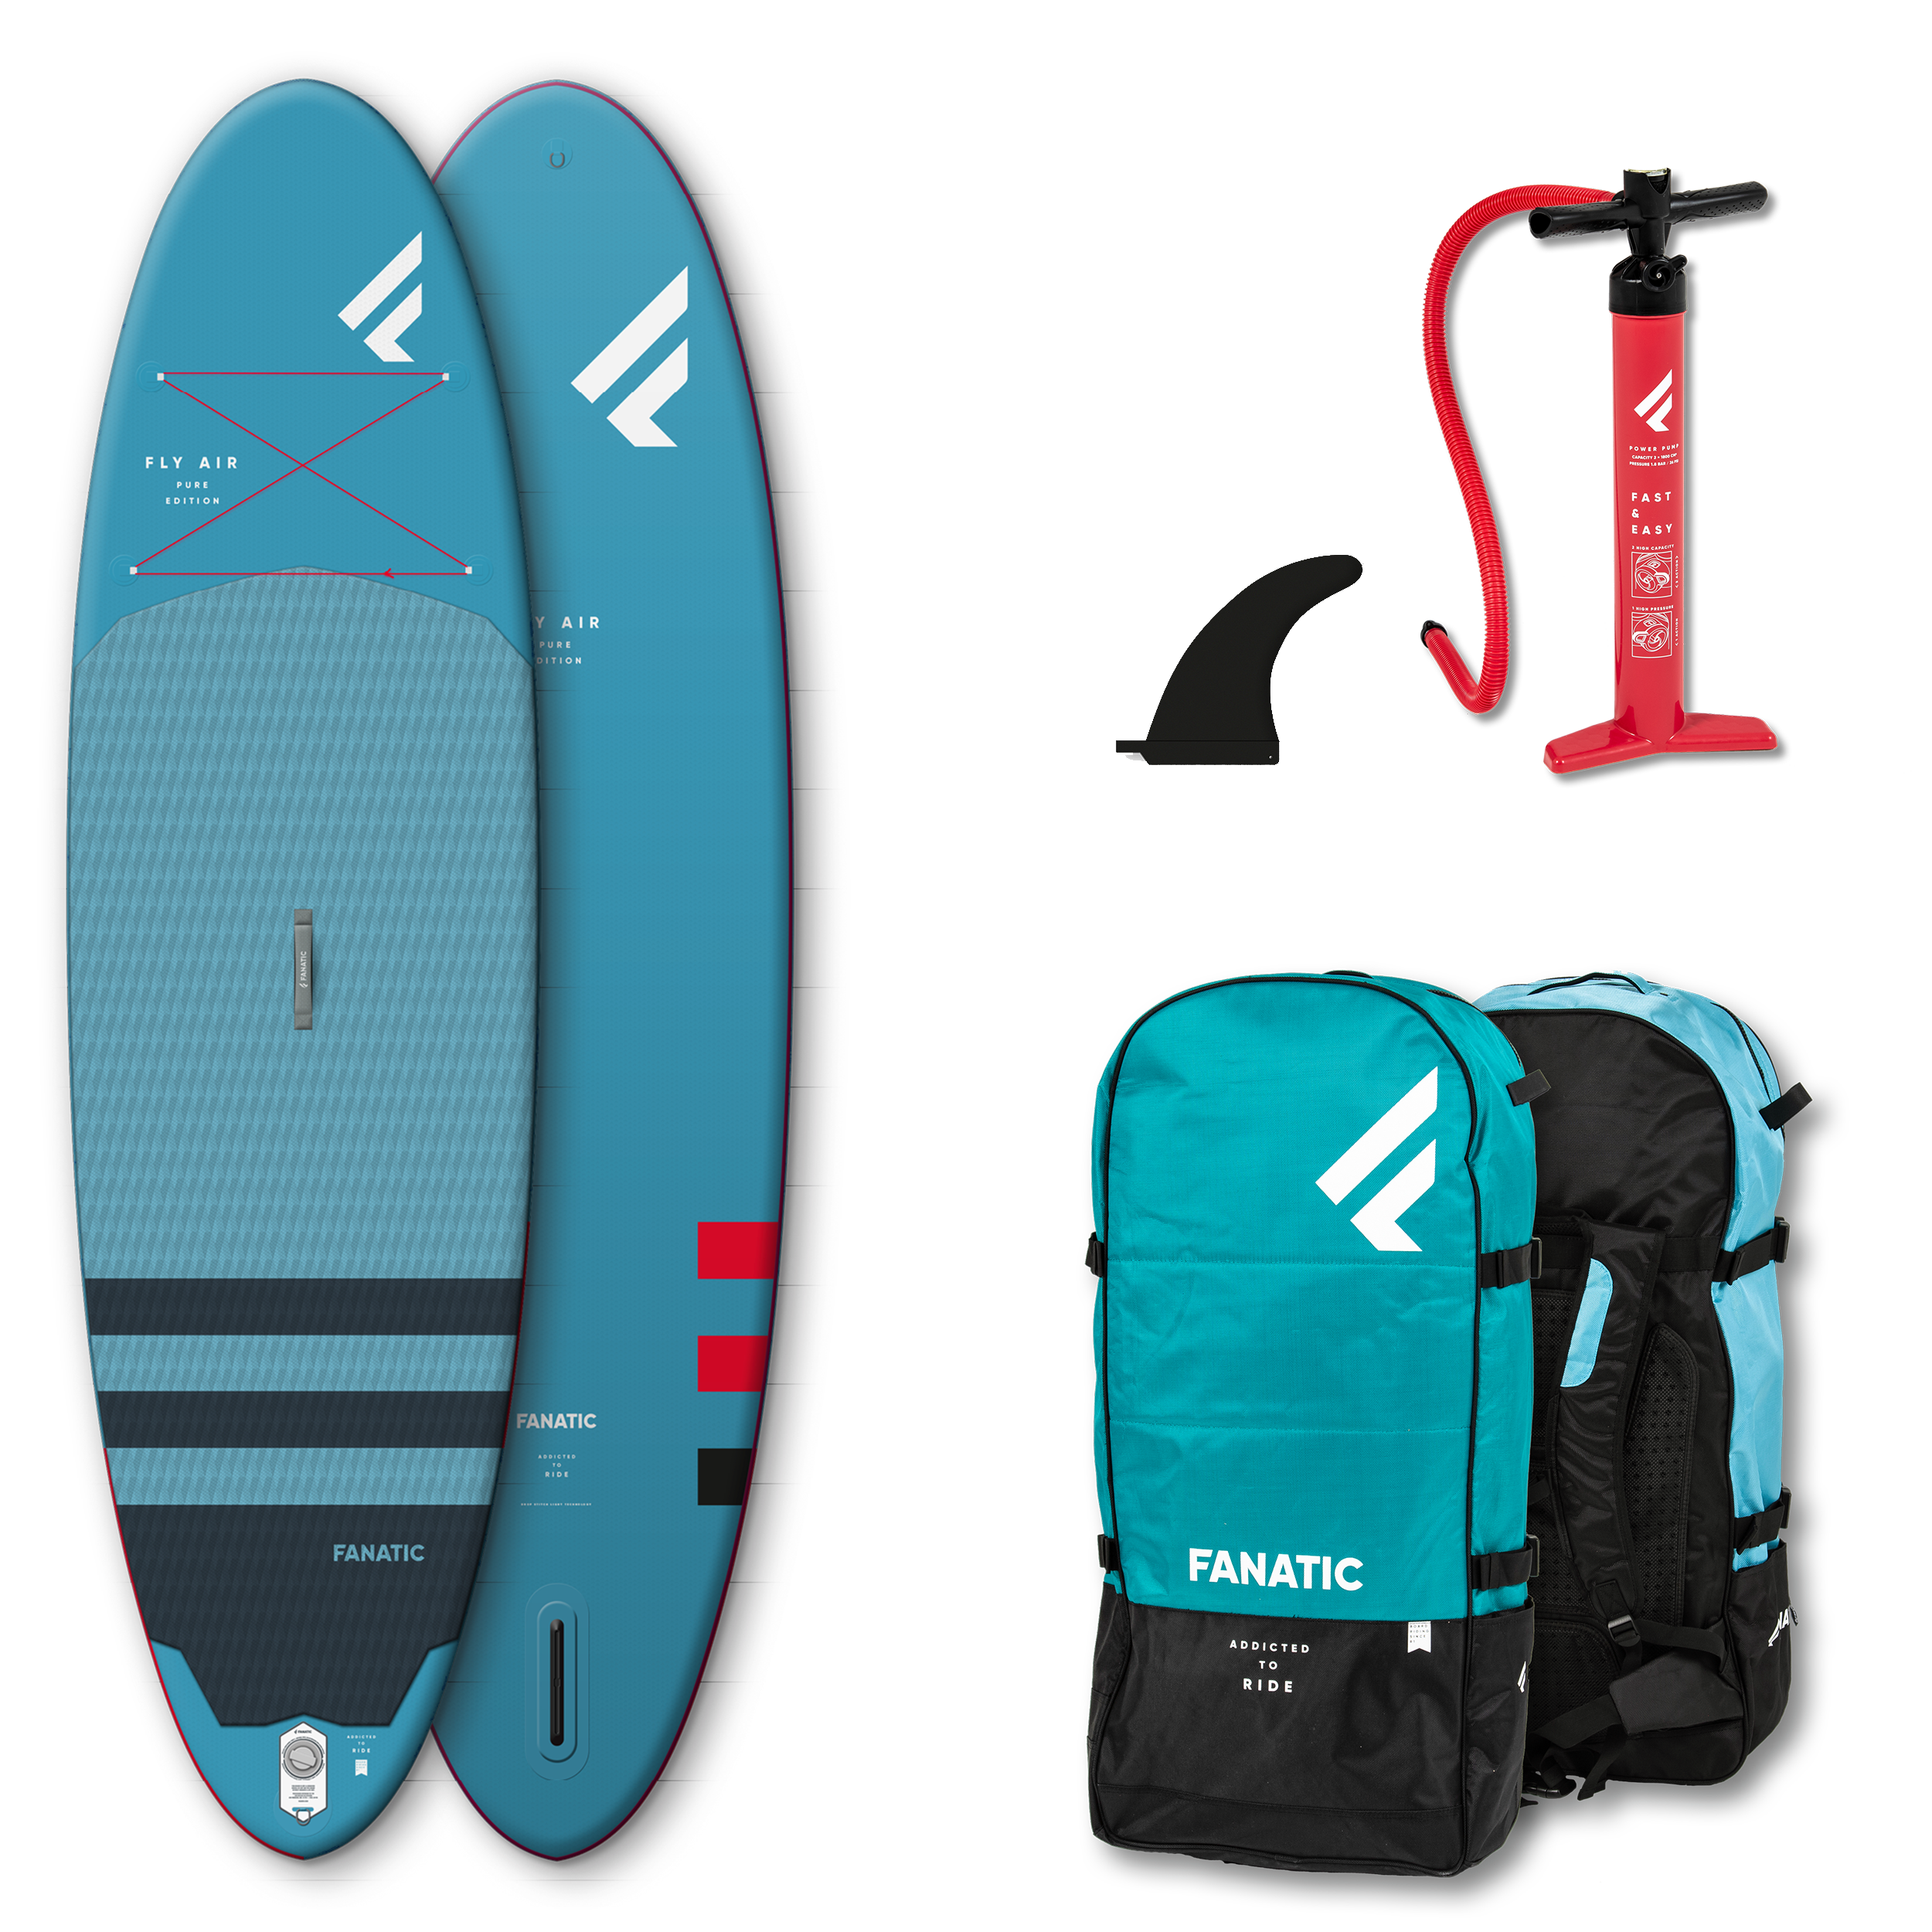 Fanatic Fly Air 10.4 x 33